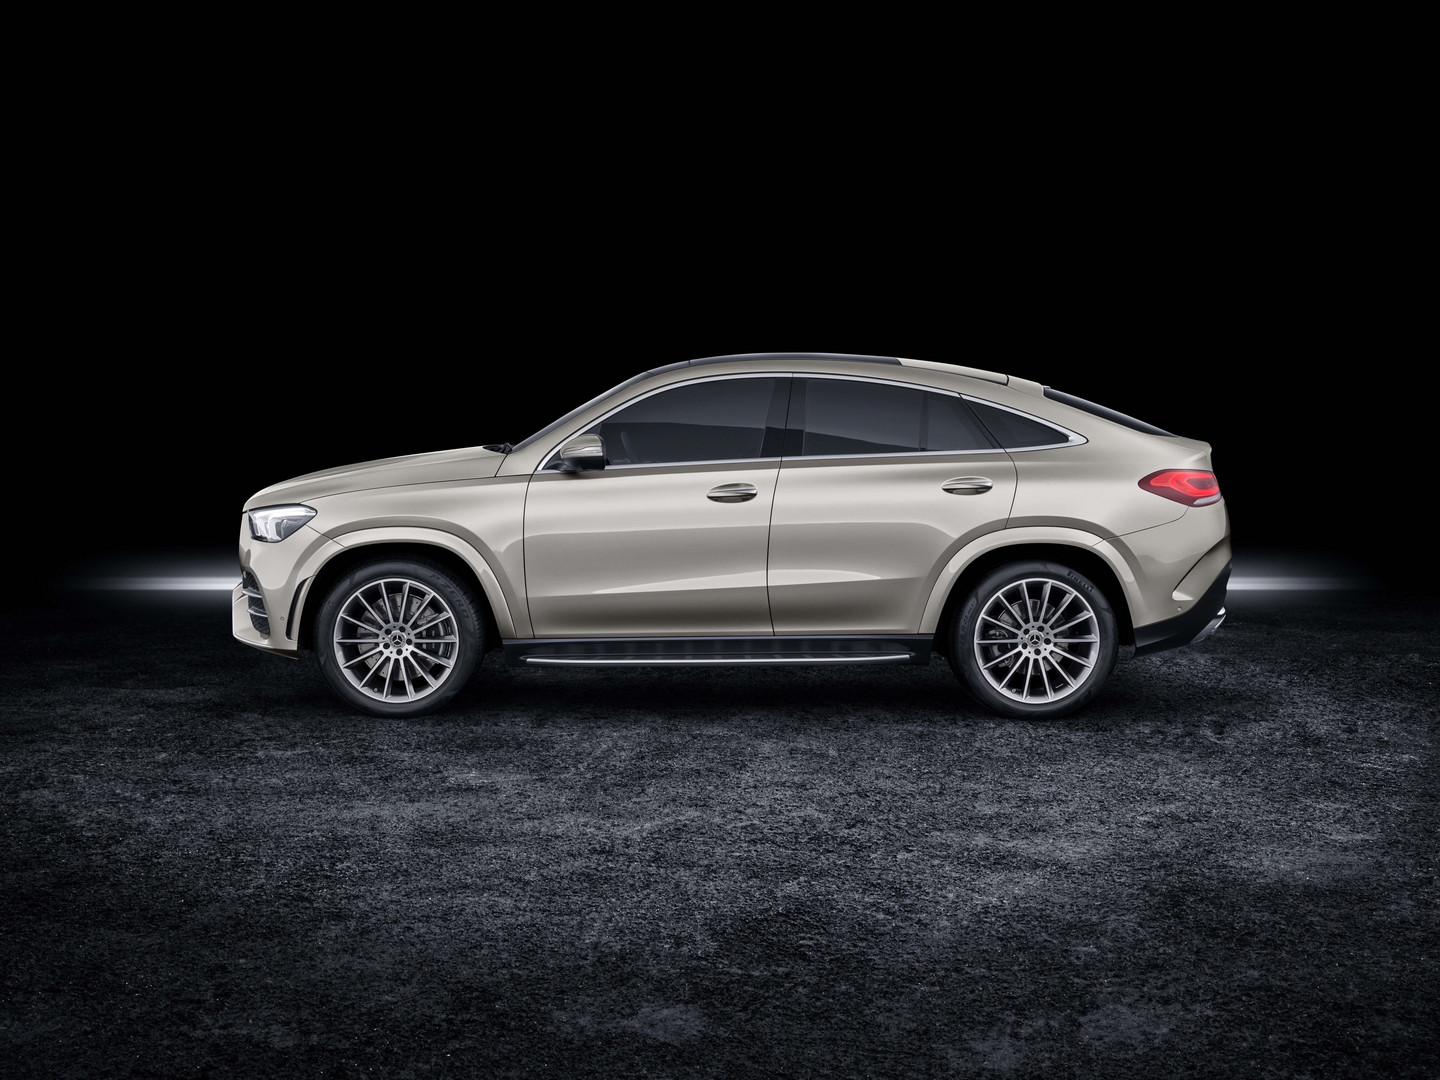 2020 Mercedes-Benz GLE Coupe Side View